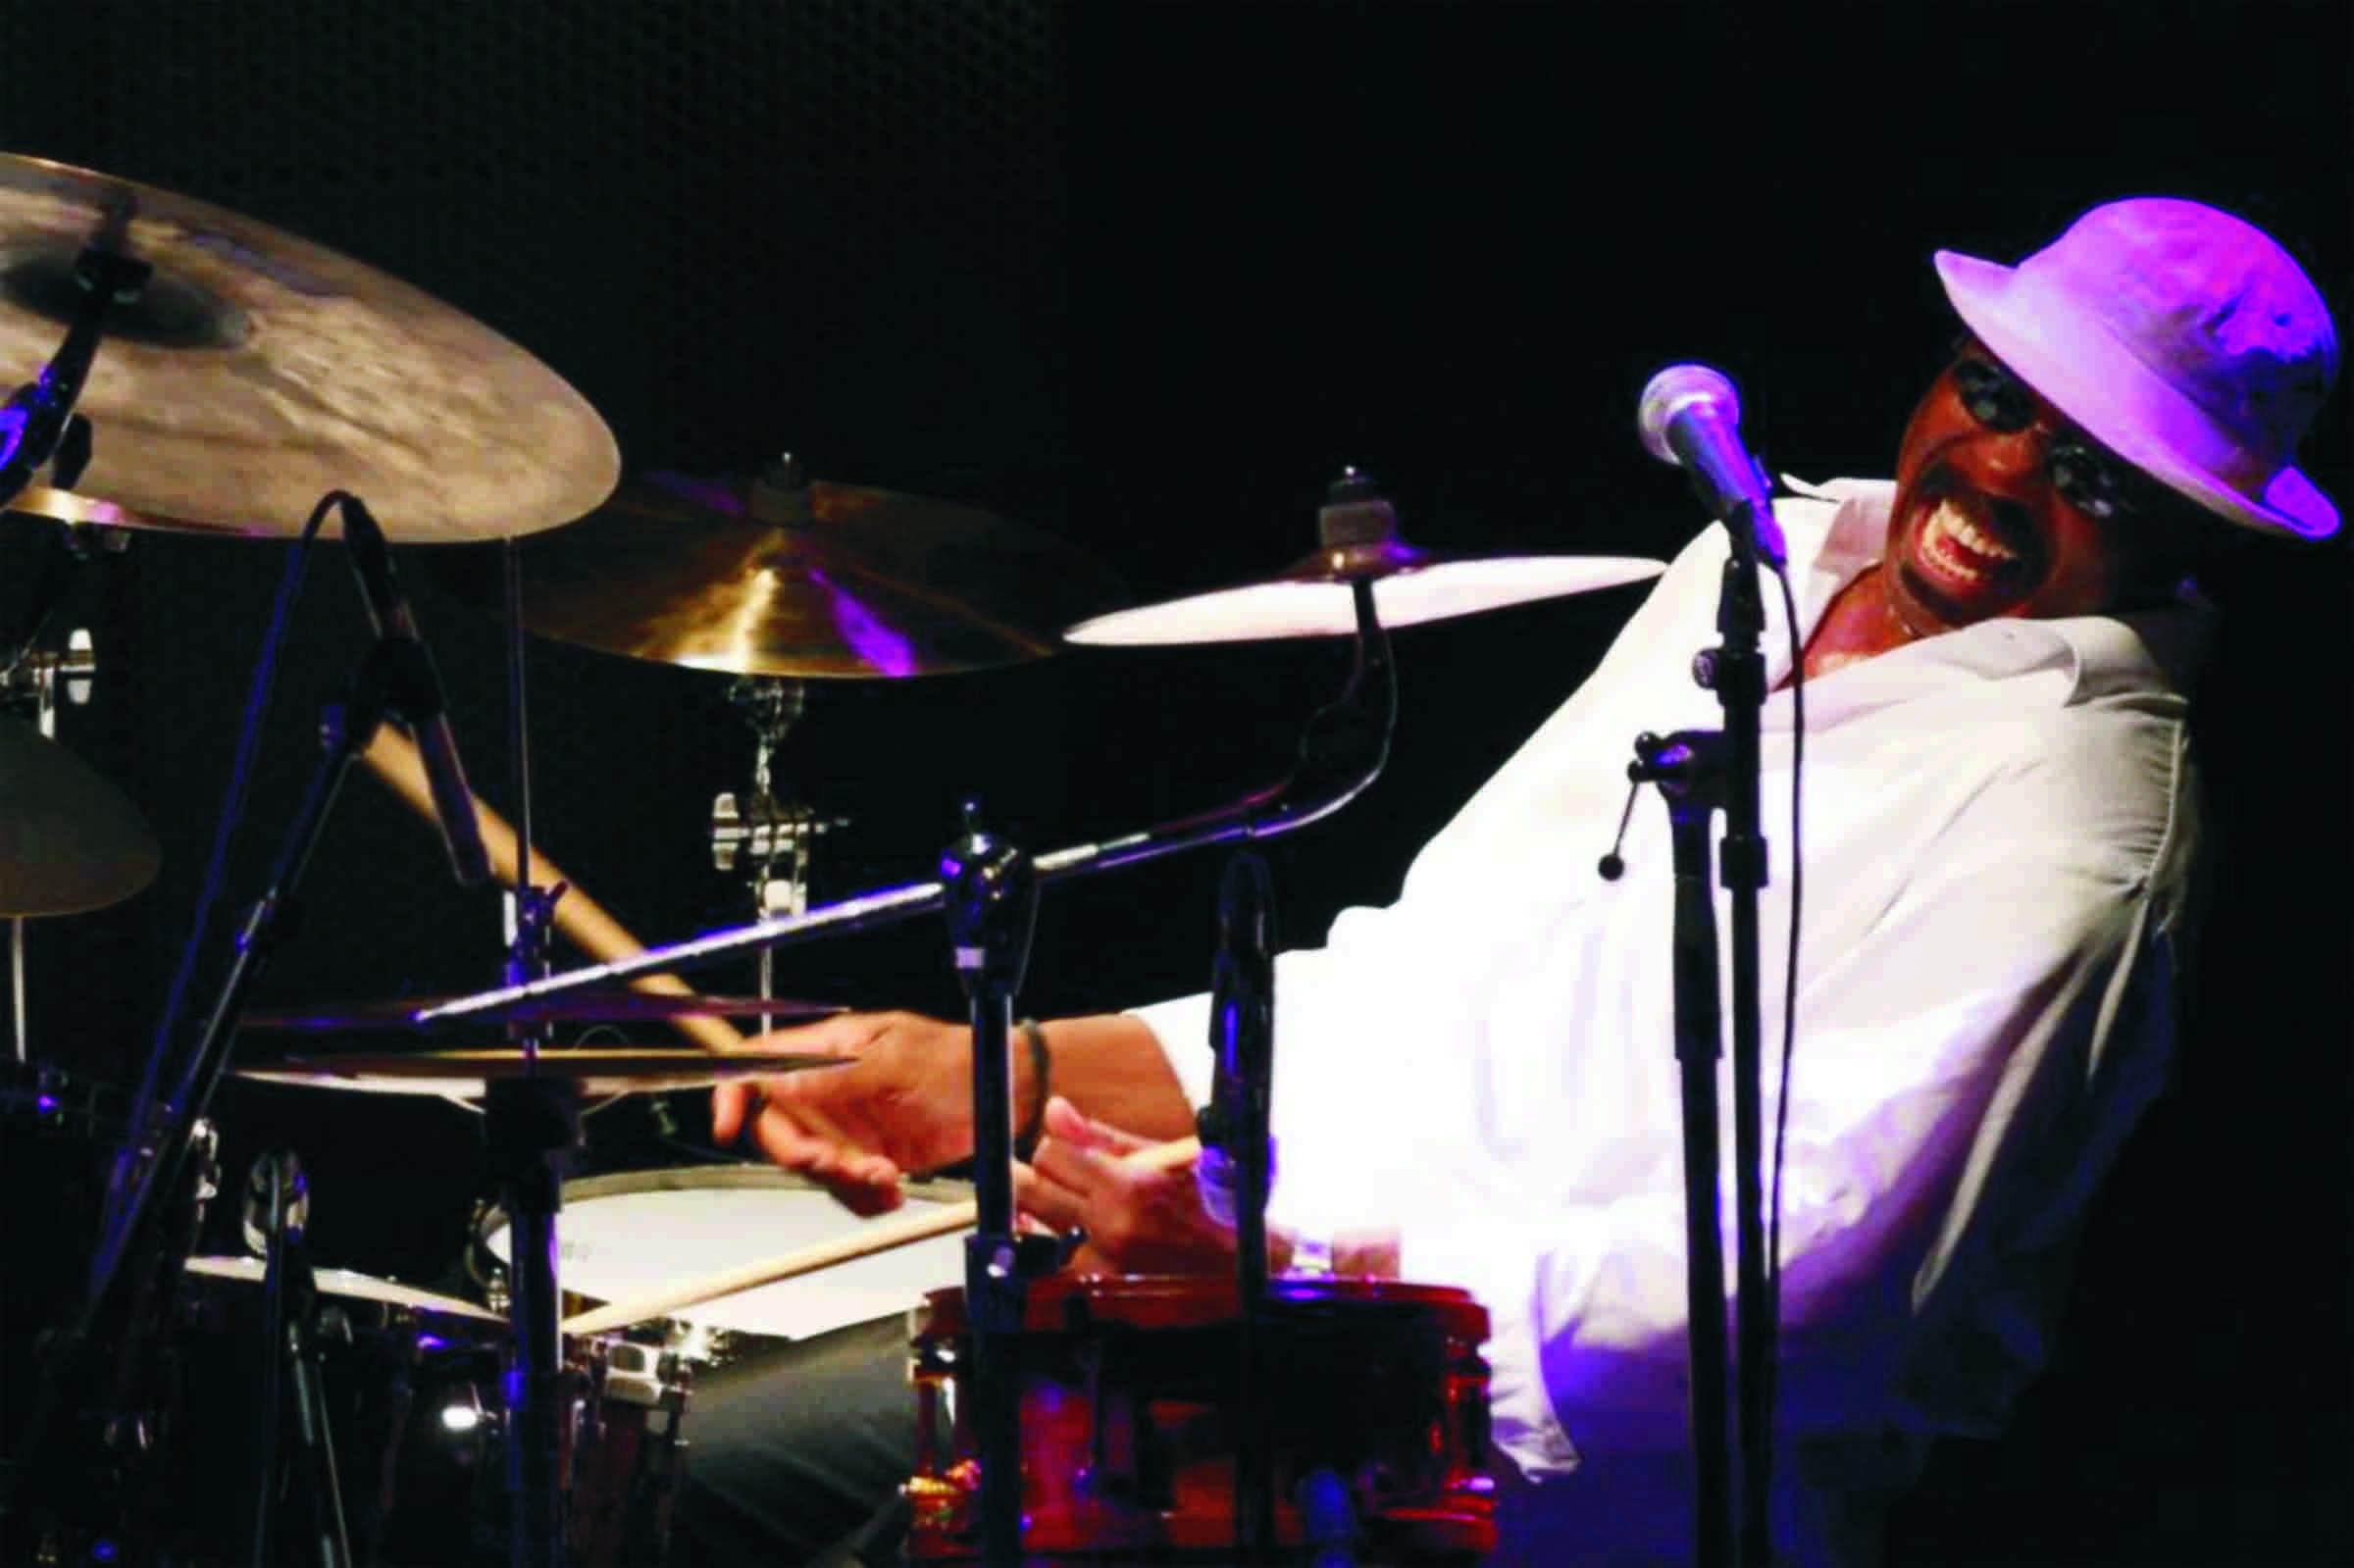 (Photo courtesy of Selby Ave JazzFest) Festival headliner Harvey Mason plays the drums.